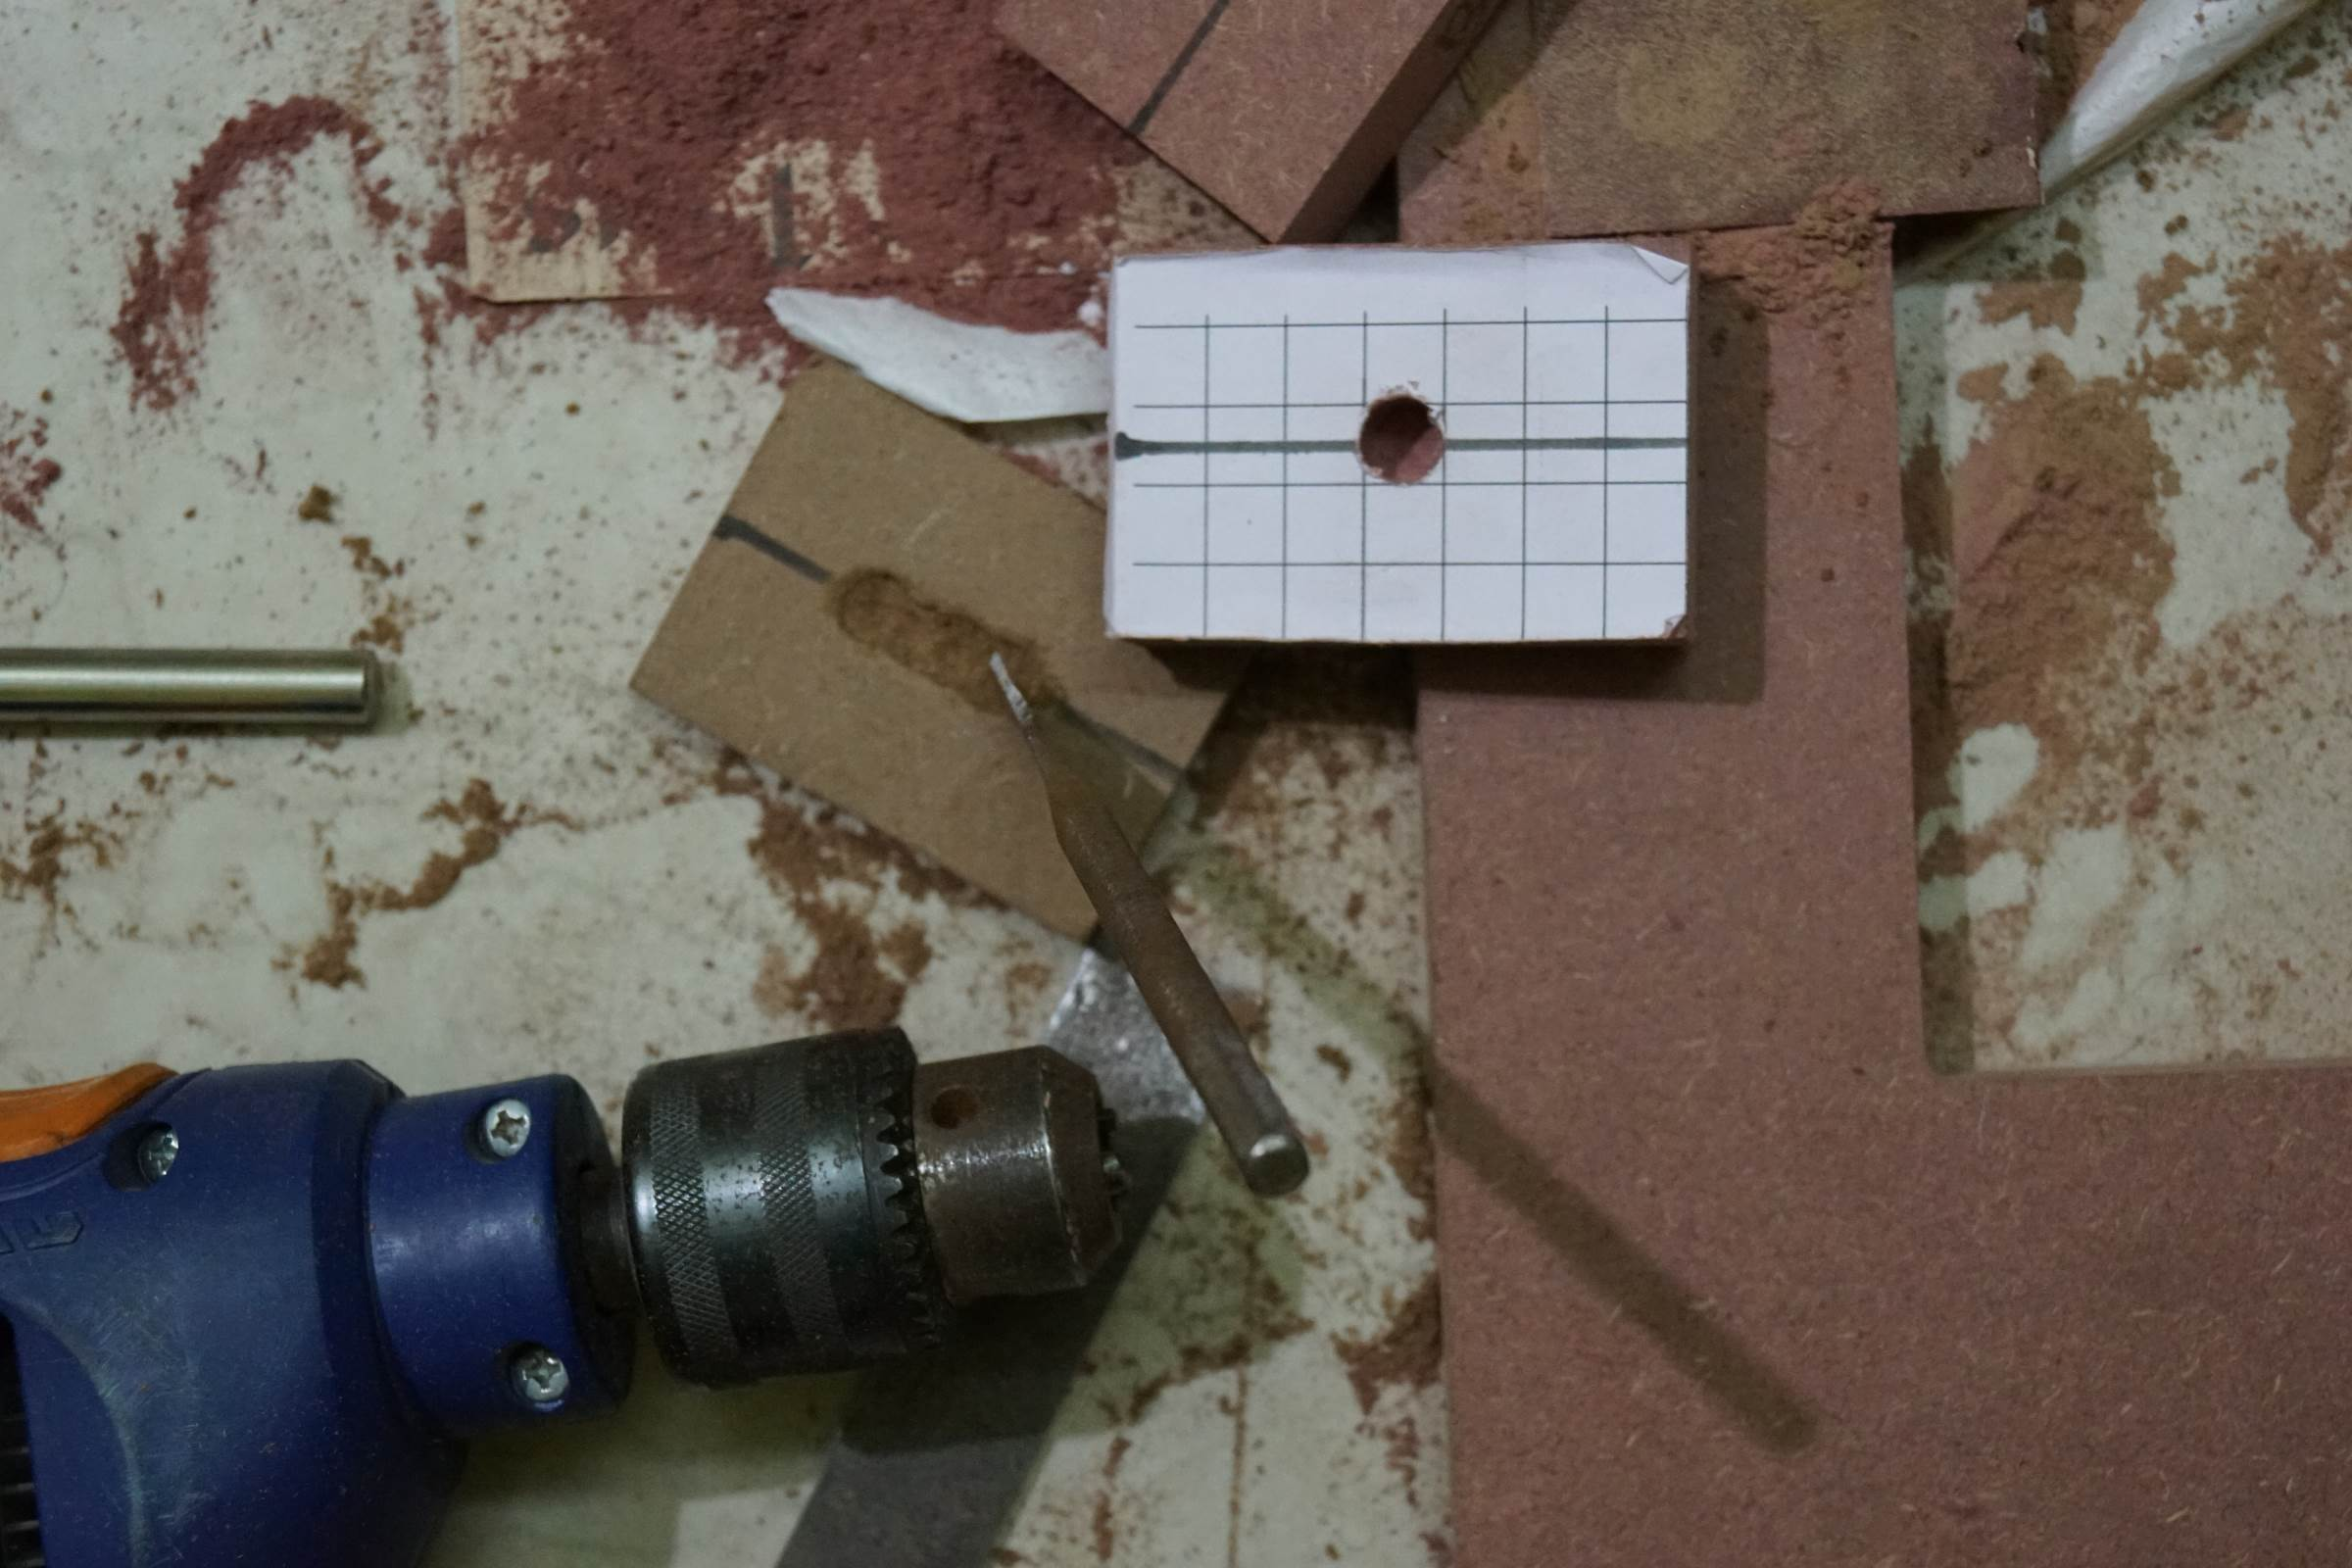 10mm Drilling on MDF Pieces